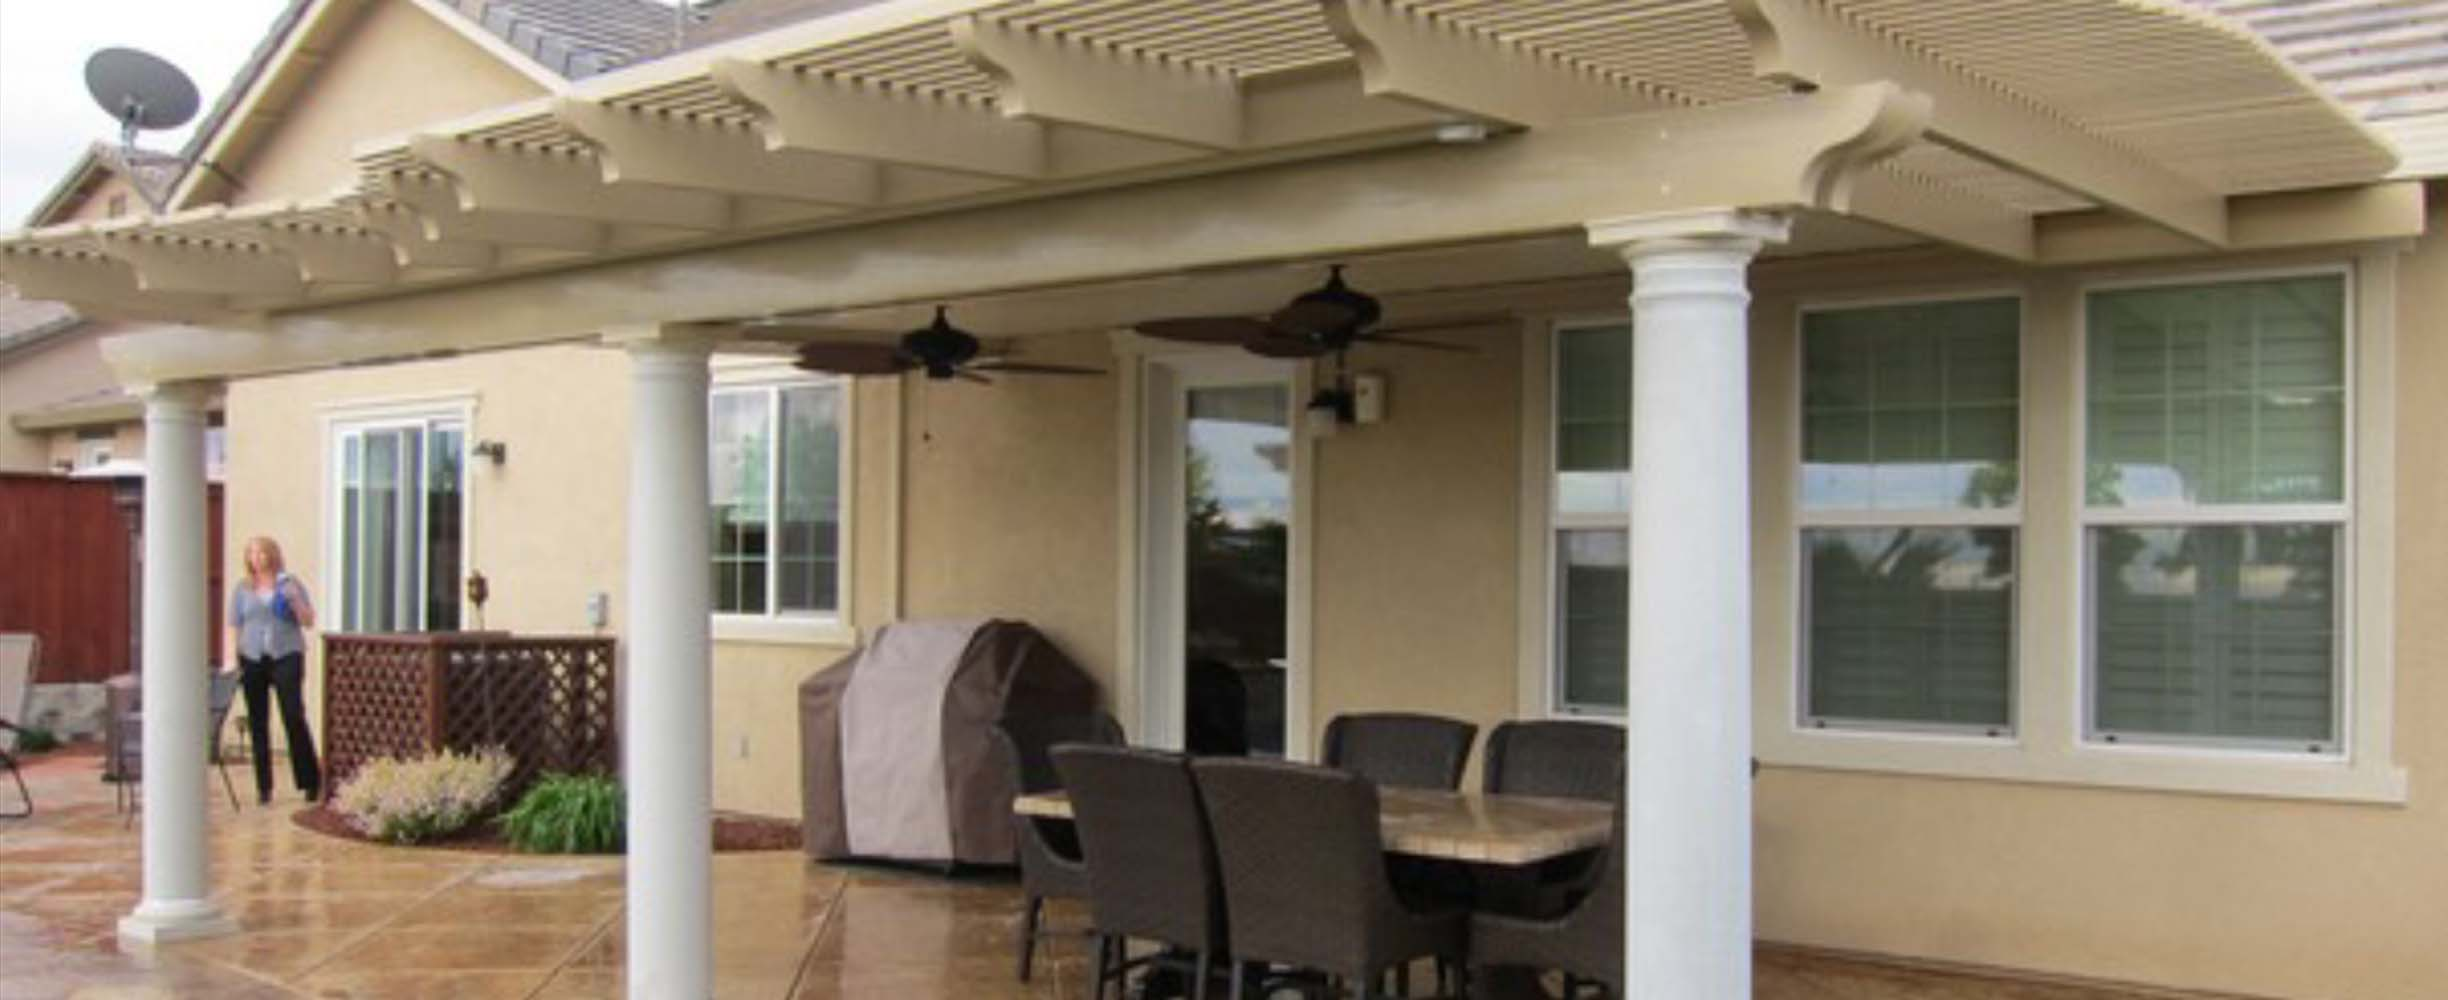 Beautiful Pergol or pergola adding functionality to a patio or garden in a beautiful & Southern Patio and Screens | Pool Enclosures | Sunrooms | Screen ...